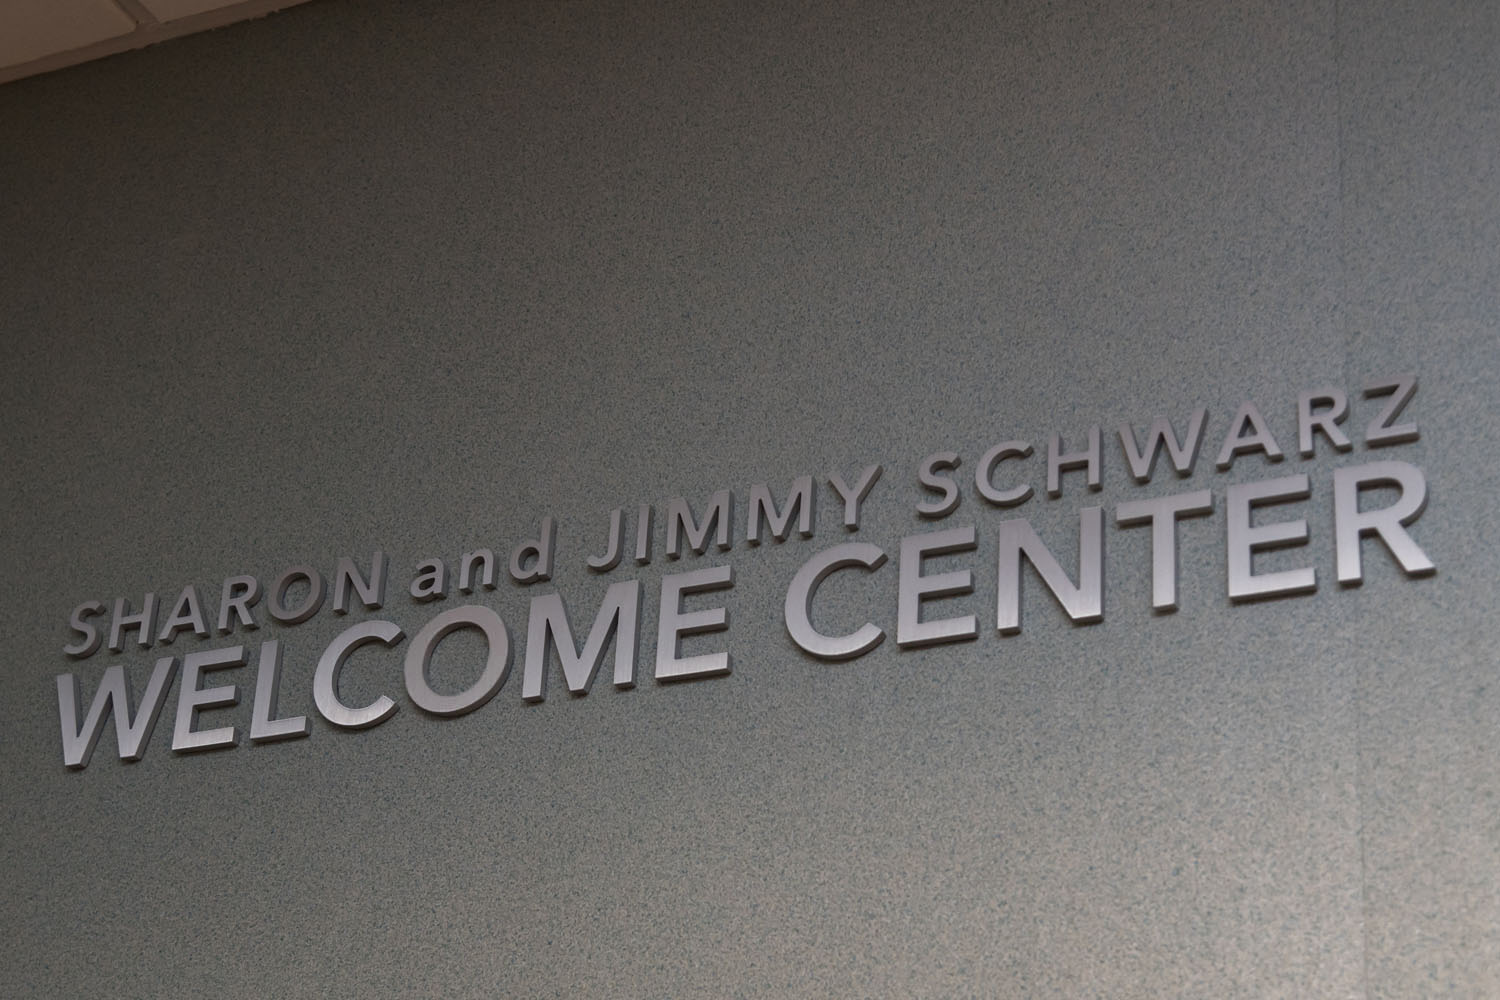 Brushed aluminum dimensional letters identifying named area of building.